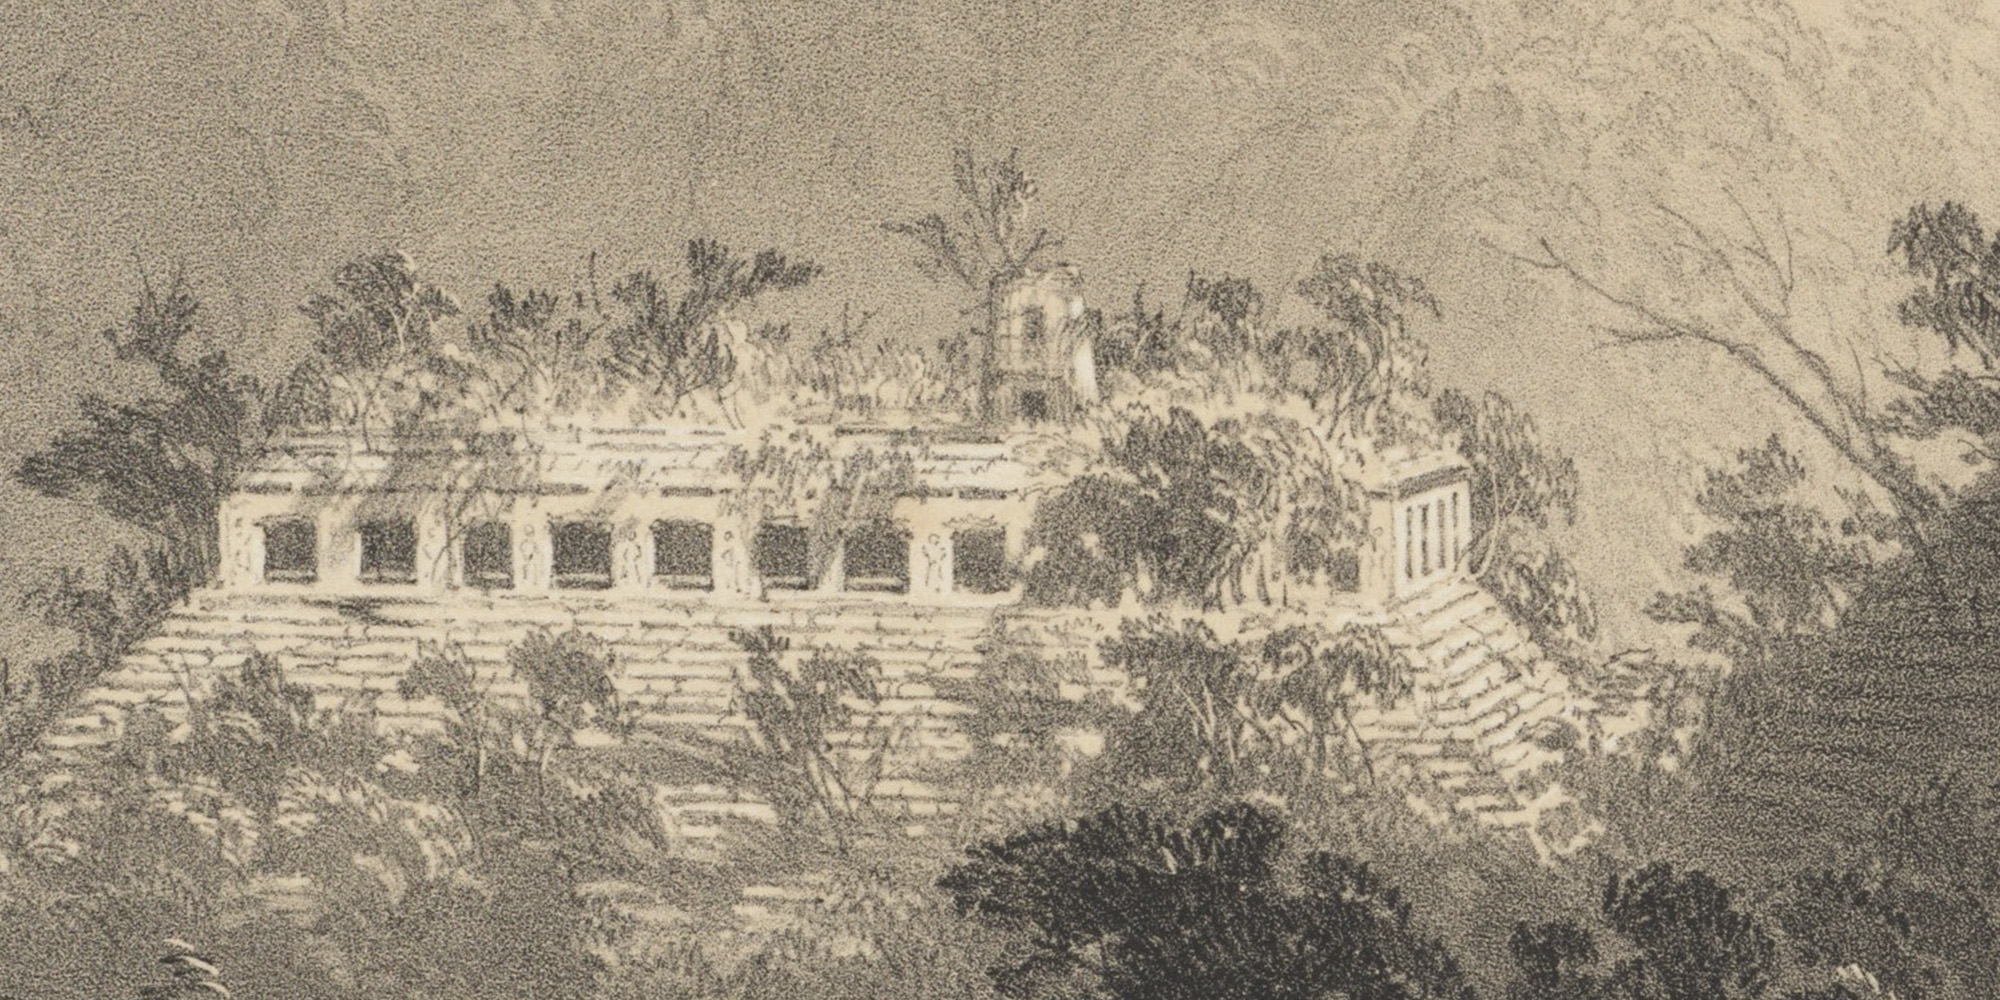 Detail of General View of Palenque, lithograph on stone by A. Picken, based on artwork by Frederick Catherwood, from Catherwood 1844, pl. VI.